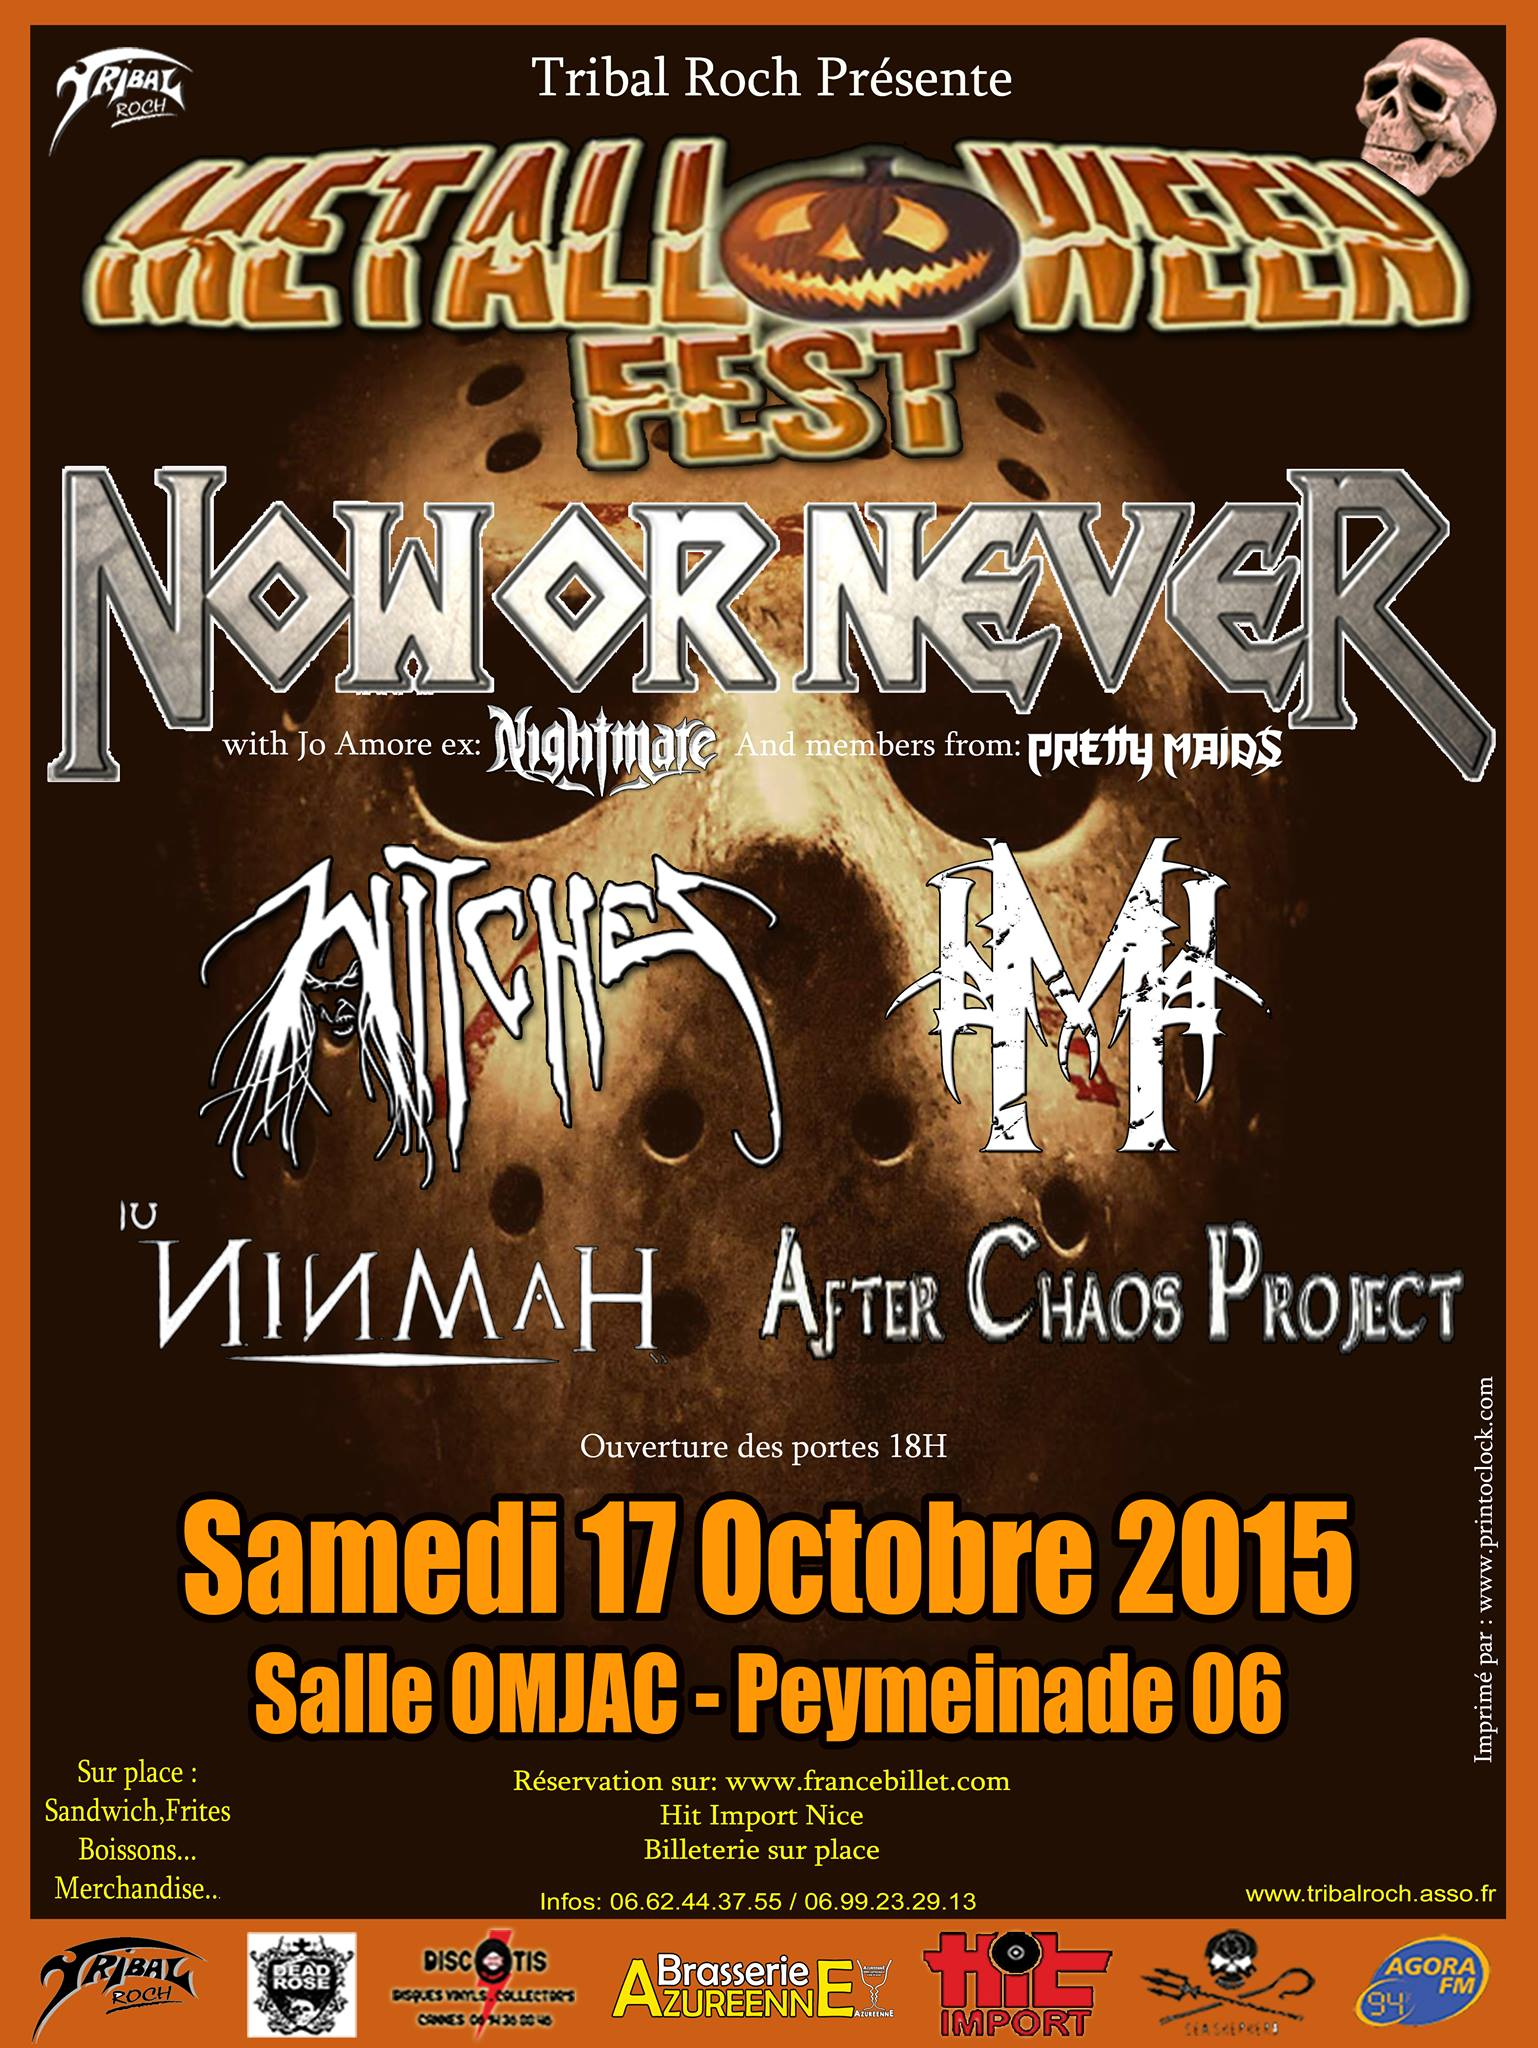 Witches flyer Now or Never + Witches + Moghan RA + Ninmah + After Chaos Project @ Witches 'Hunt Europe Tour Salle OMJAC Peymeinade (06), France